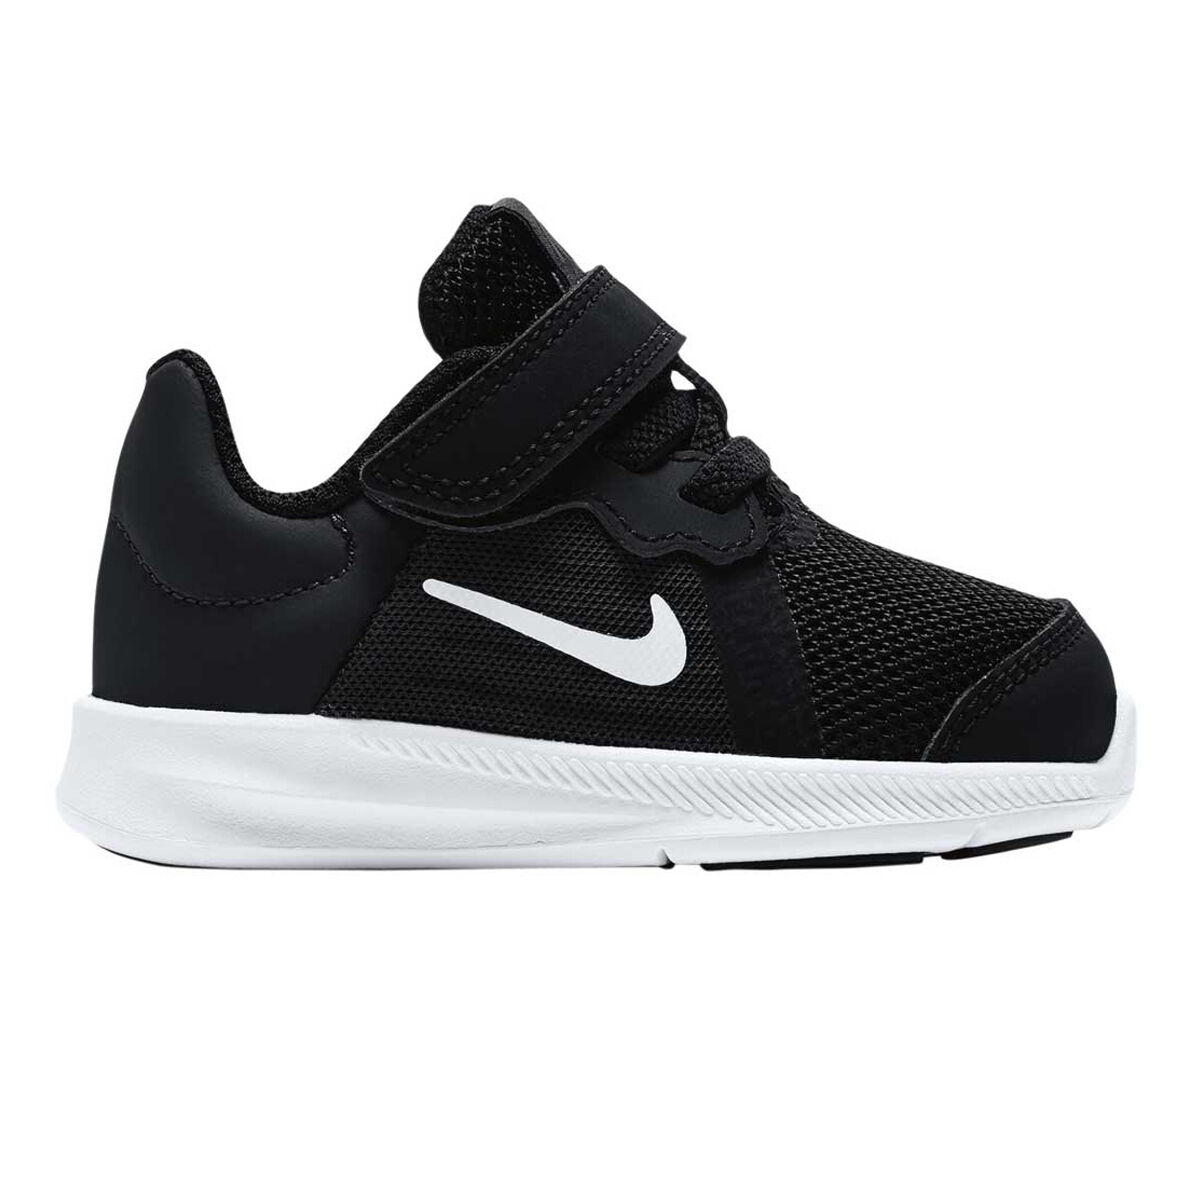 Nike Downshifter 8 Toddlers Running Shoes